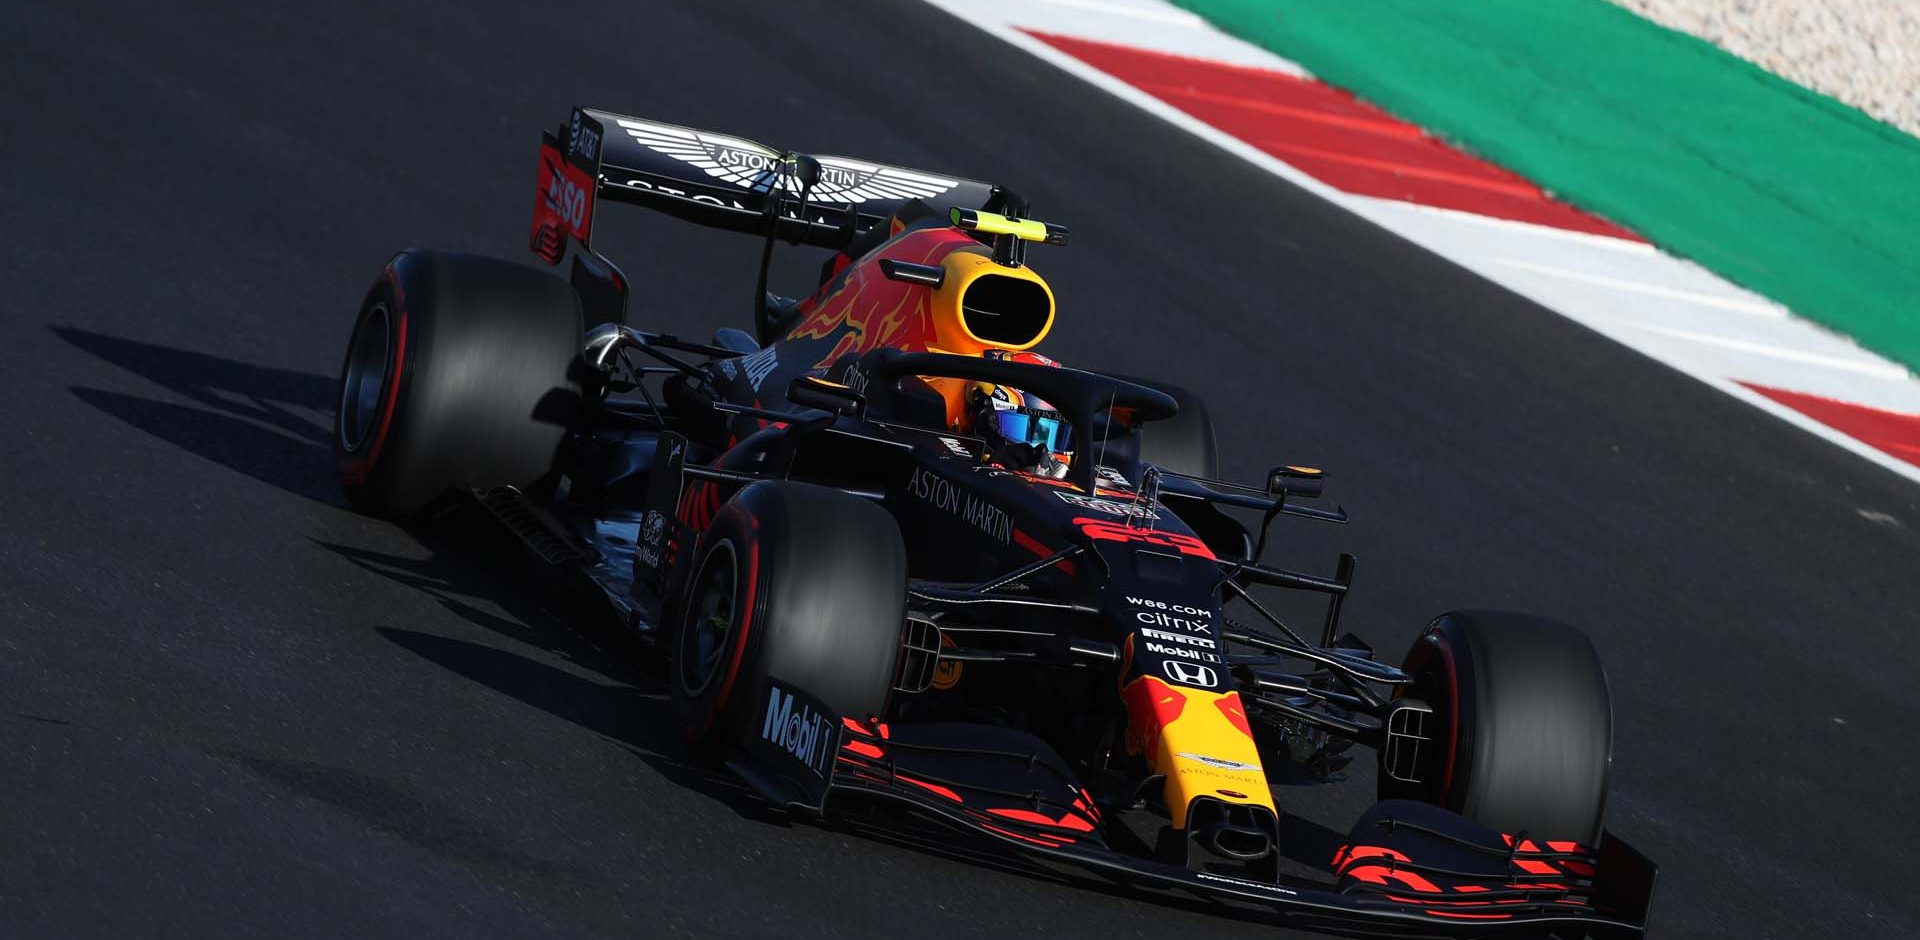 PORTIMAO, PORTUGAL - OCTOBER 23: Alexander Albon of Thailand driving the (23) Aston Martin Red Bull Racing RB16 on track during practice ahead of the F1 Grand Prix of Portugal at Autodromo Internacional do Algarve on October 23, 2020 in Portimao, Portugal. (Photo by Jose Sena Goulao - Pool/Getty Images)